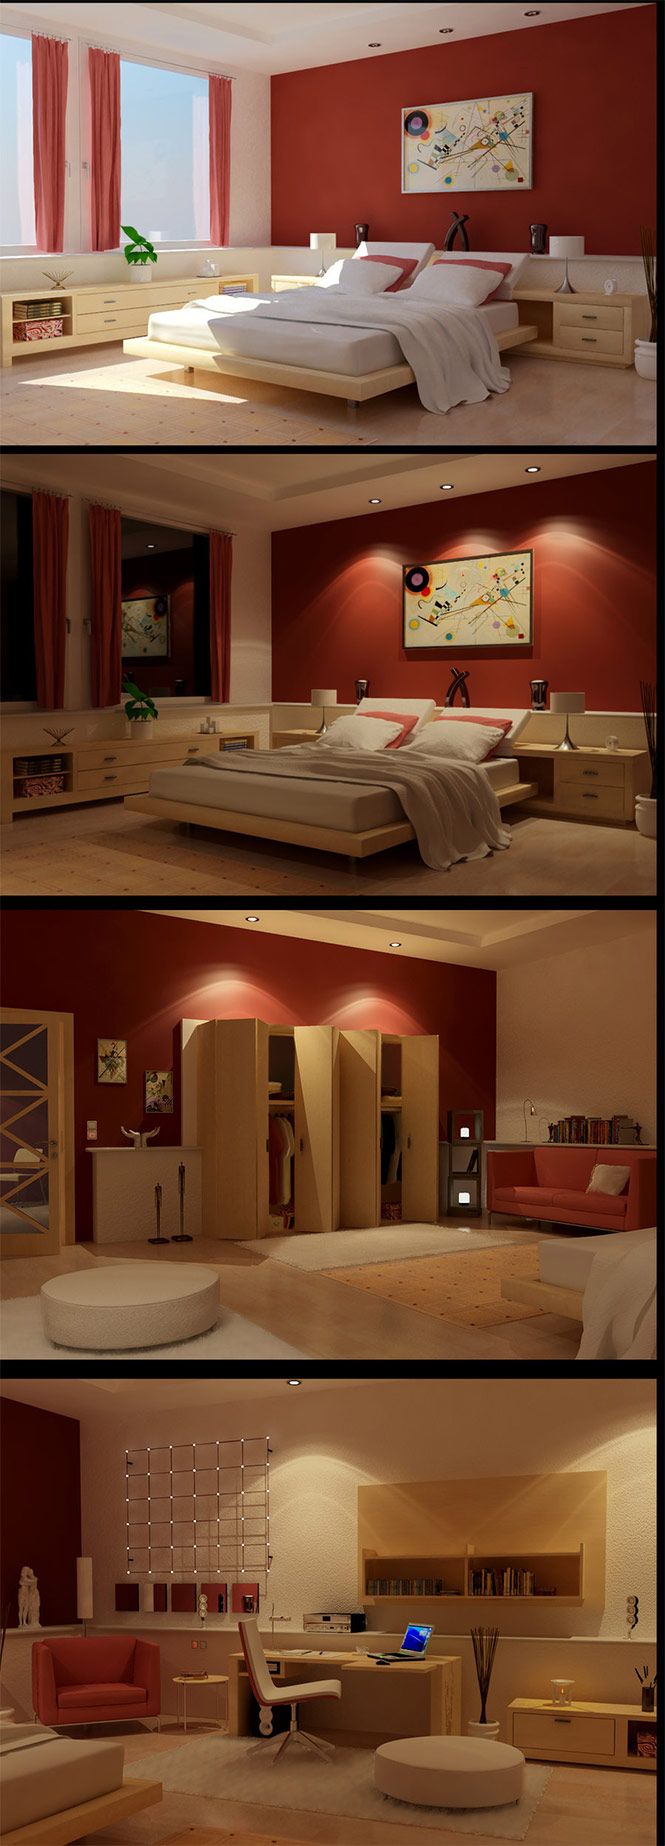 wooden red bedroom design